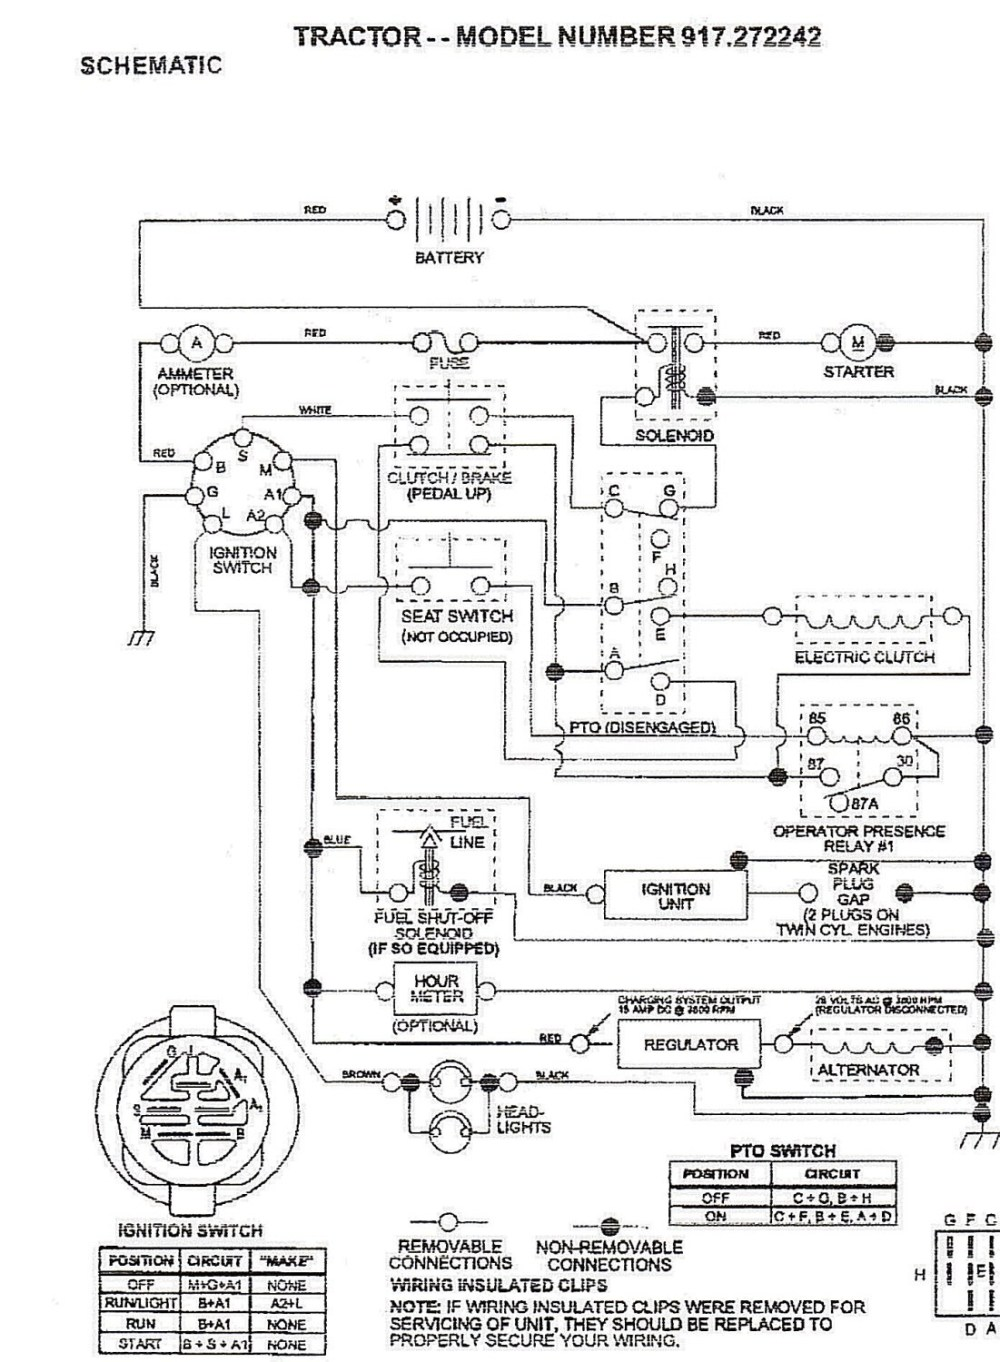 medium resolution of 20 hp briggs and stratton wiring diagram wiring diagrams briggs and stratton intek 344 wiring diagram